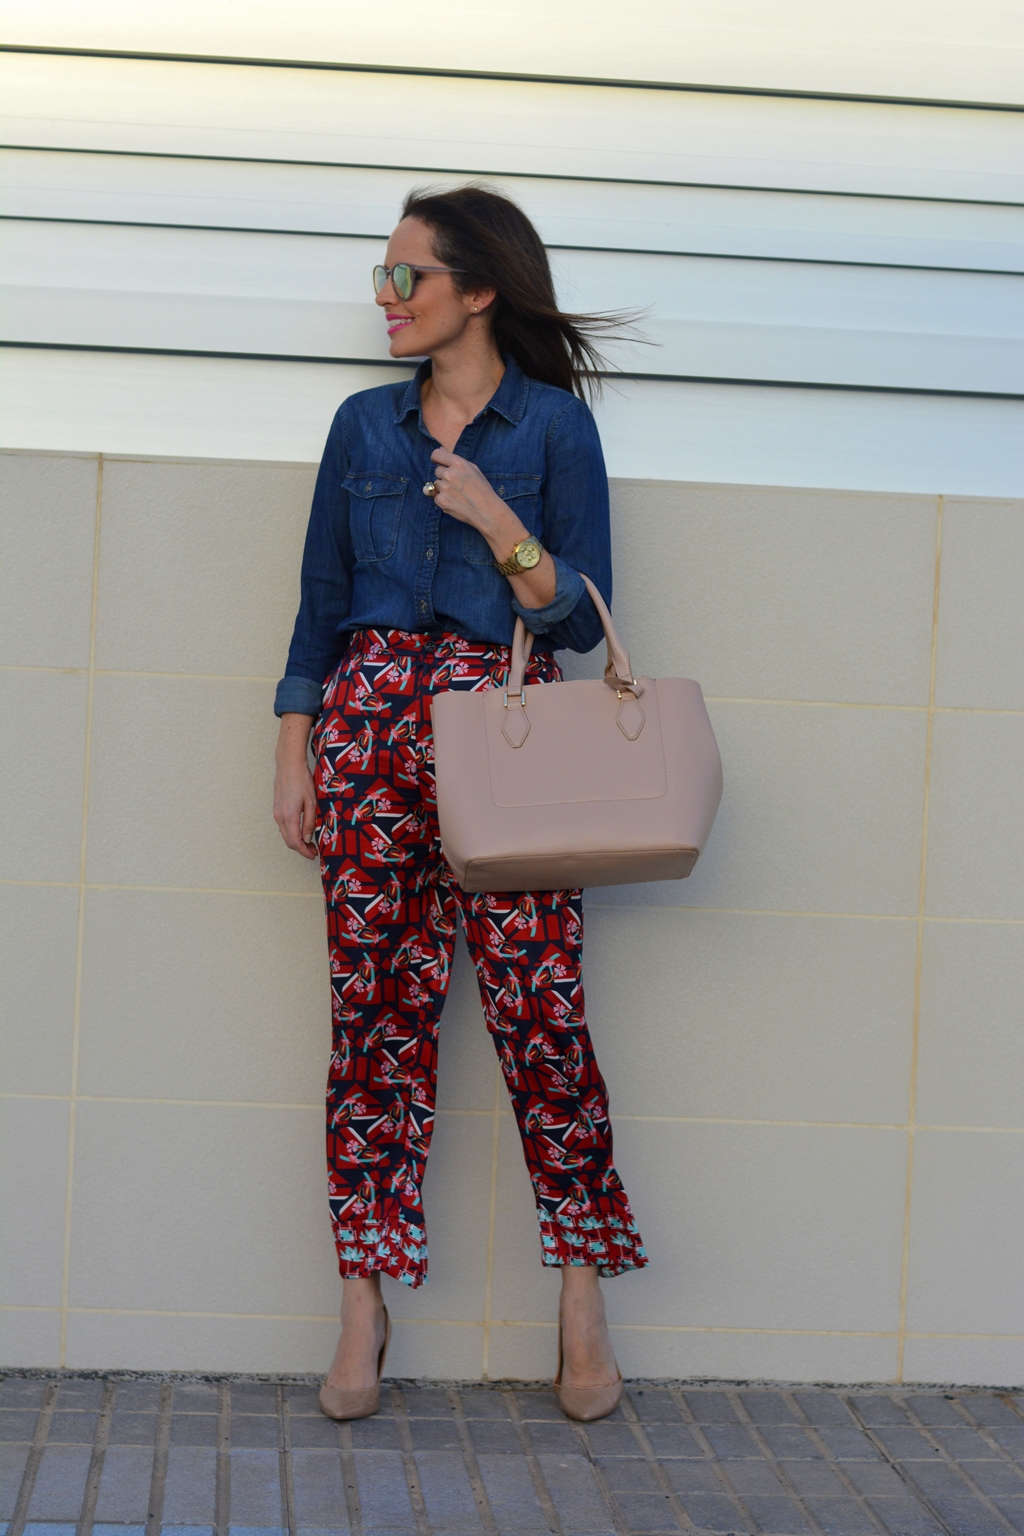 pyjama-pants-sfera-look-denim-zara